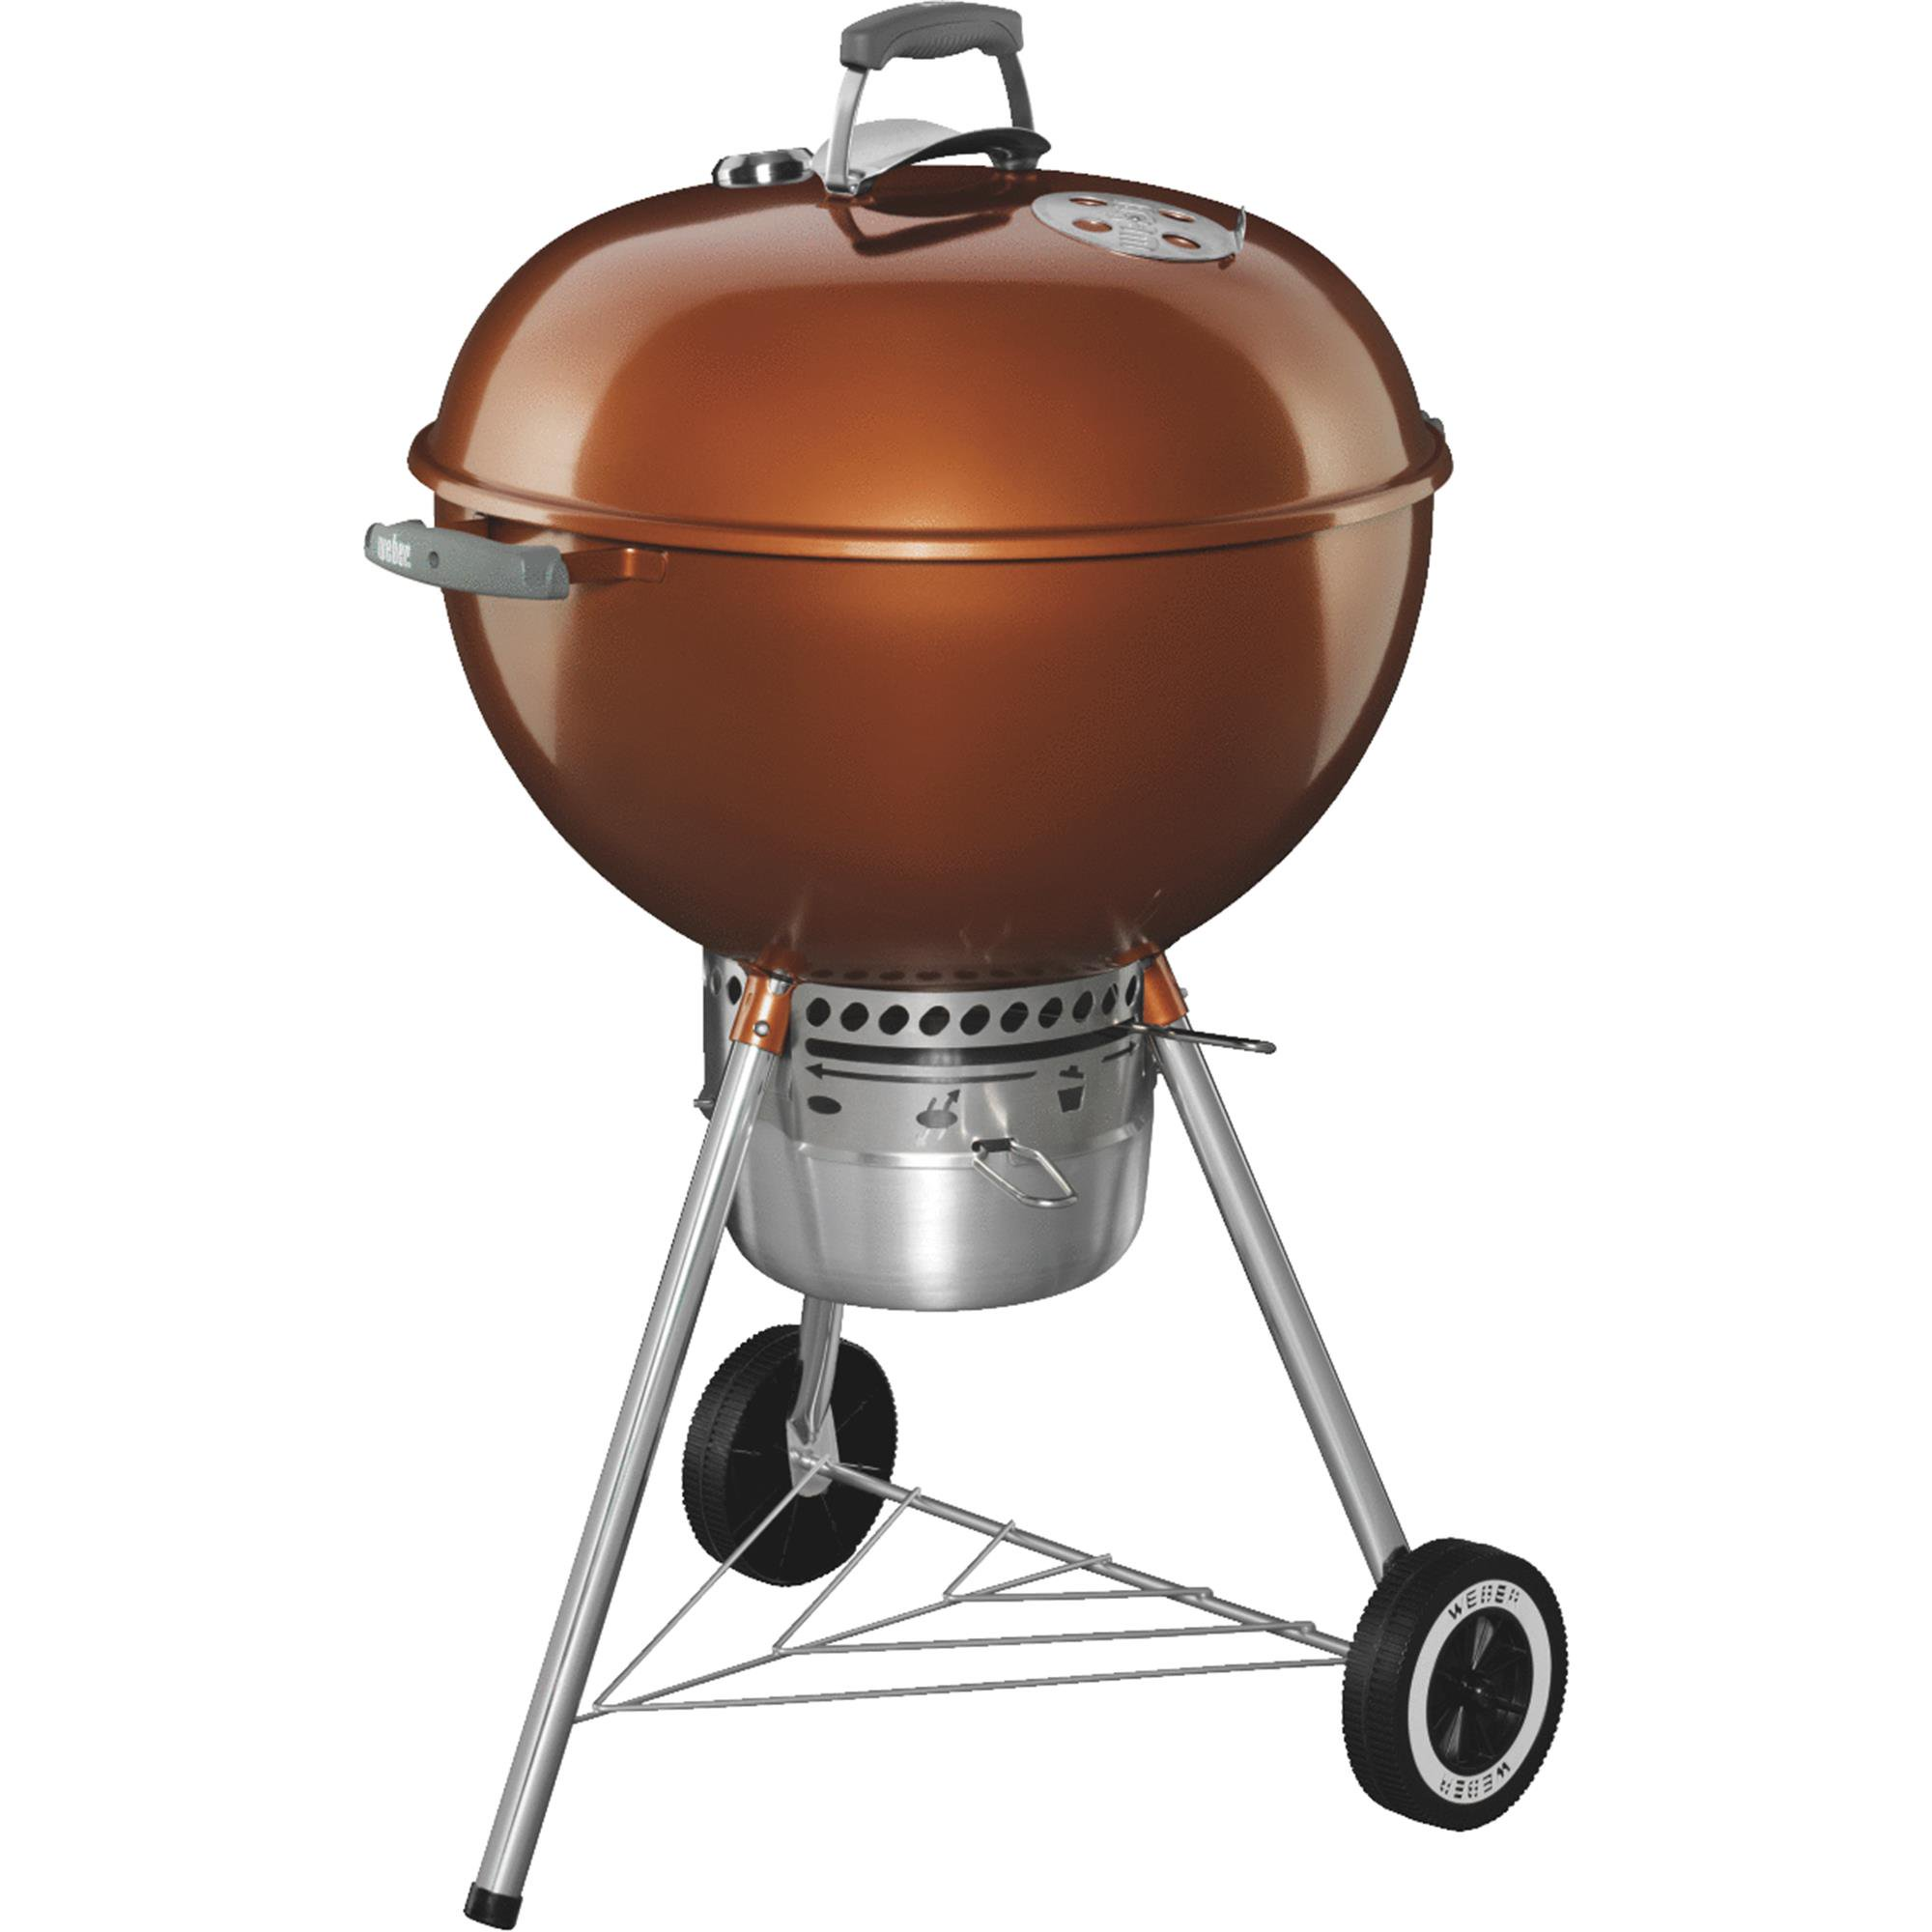 Weber Original Kettle 22 In. Premium Charcoal Grill by Weber